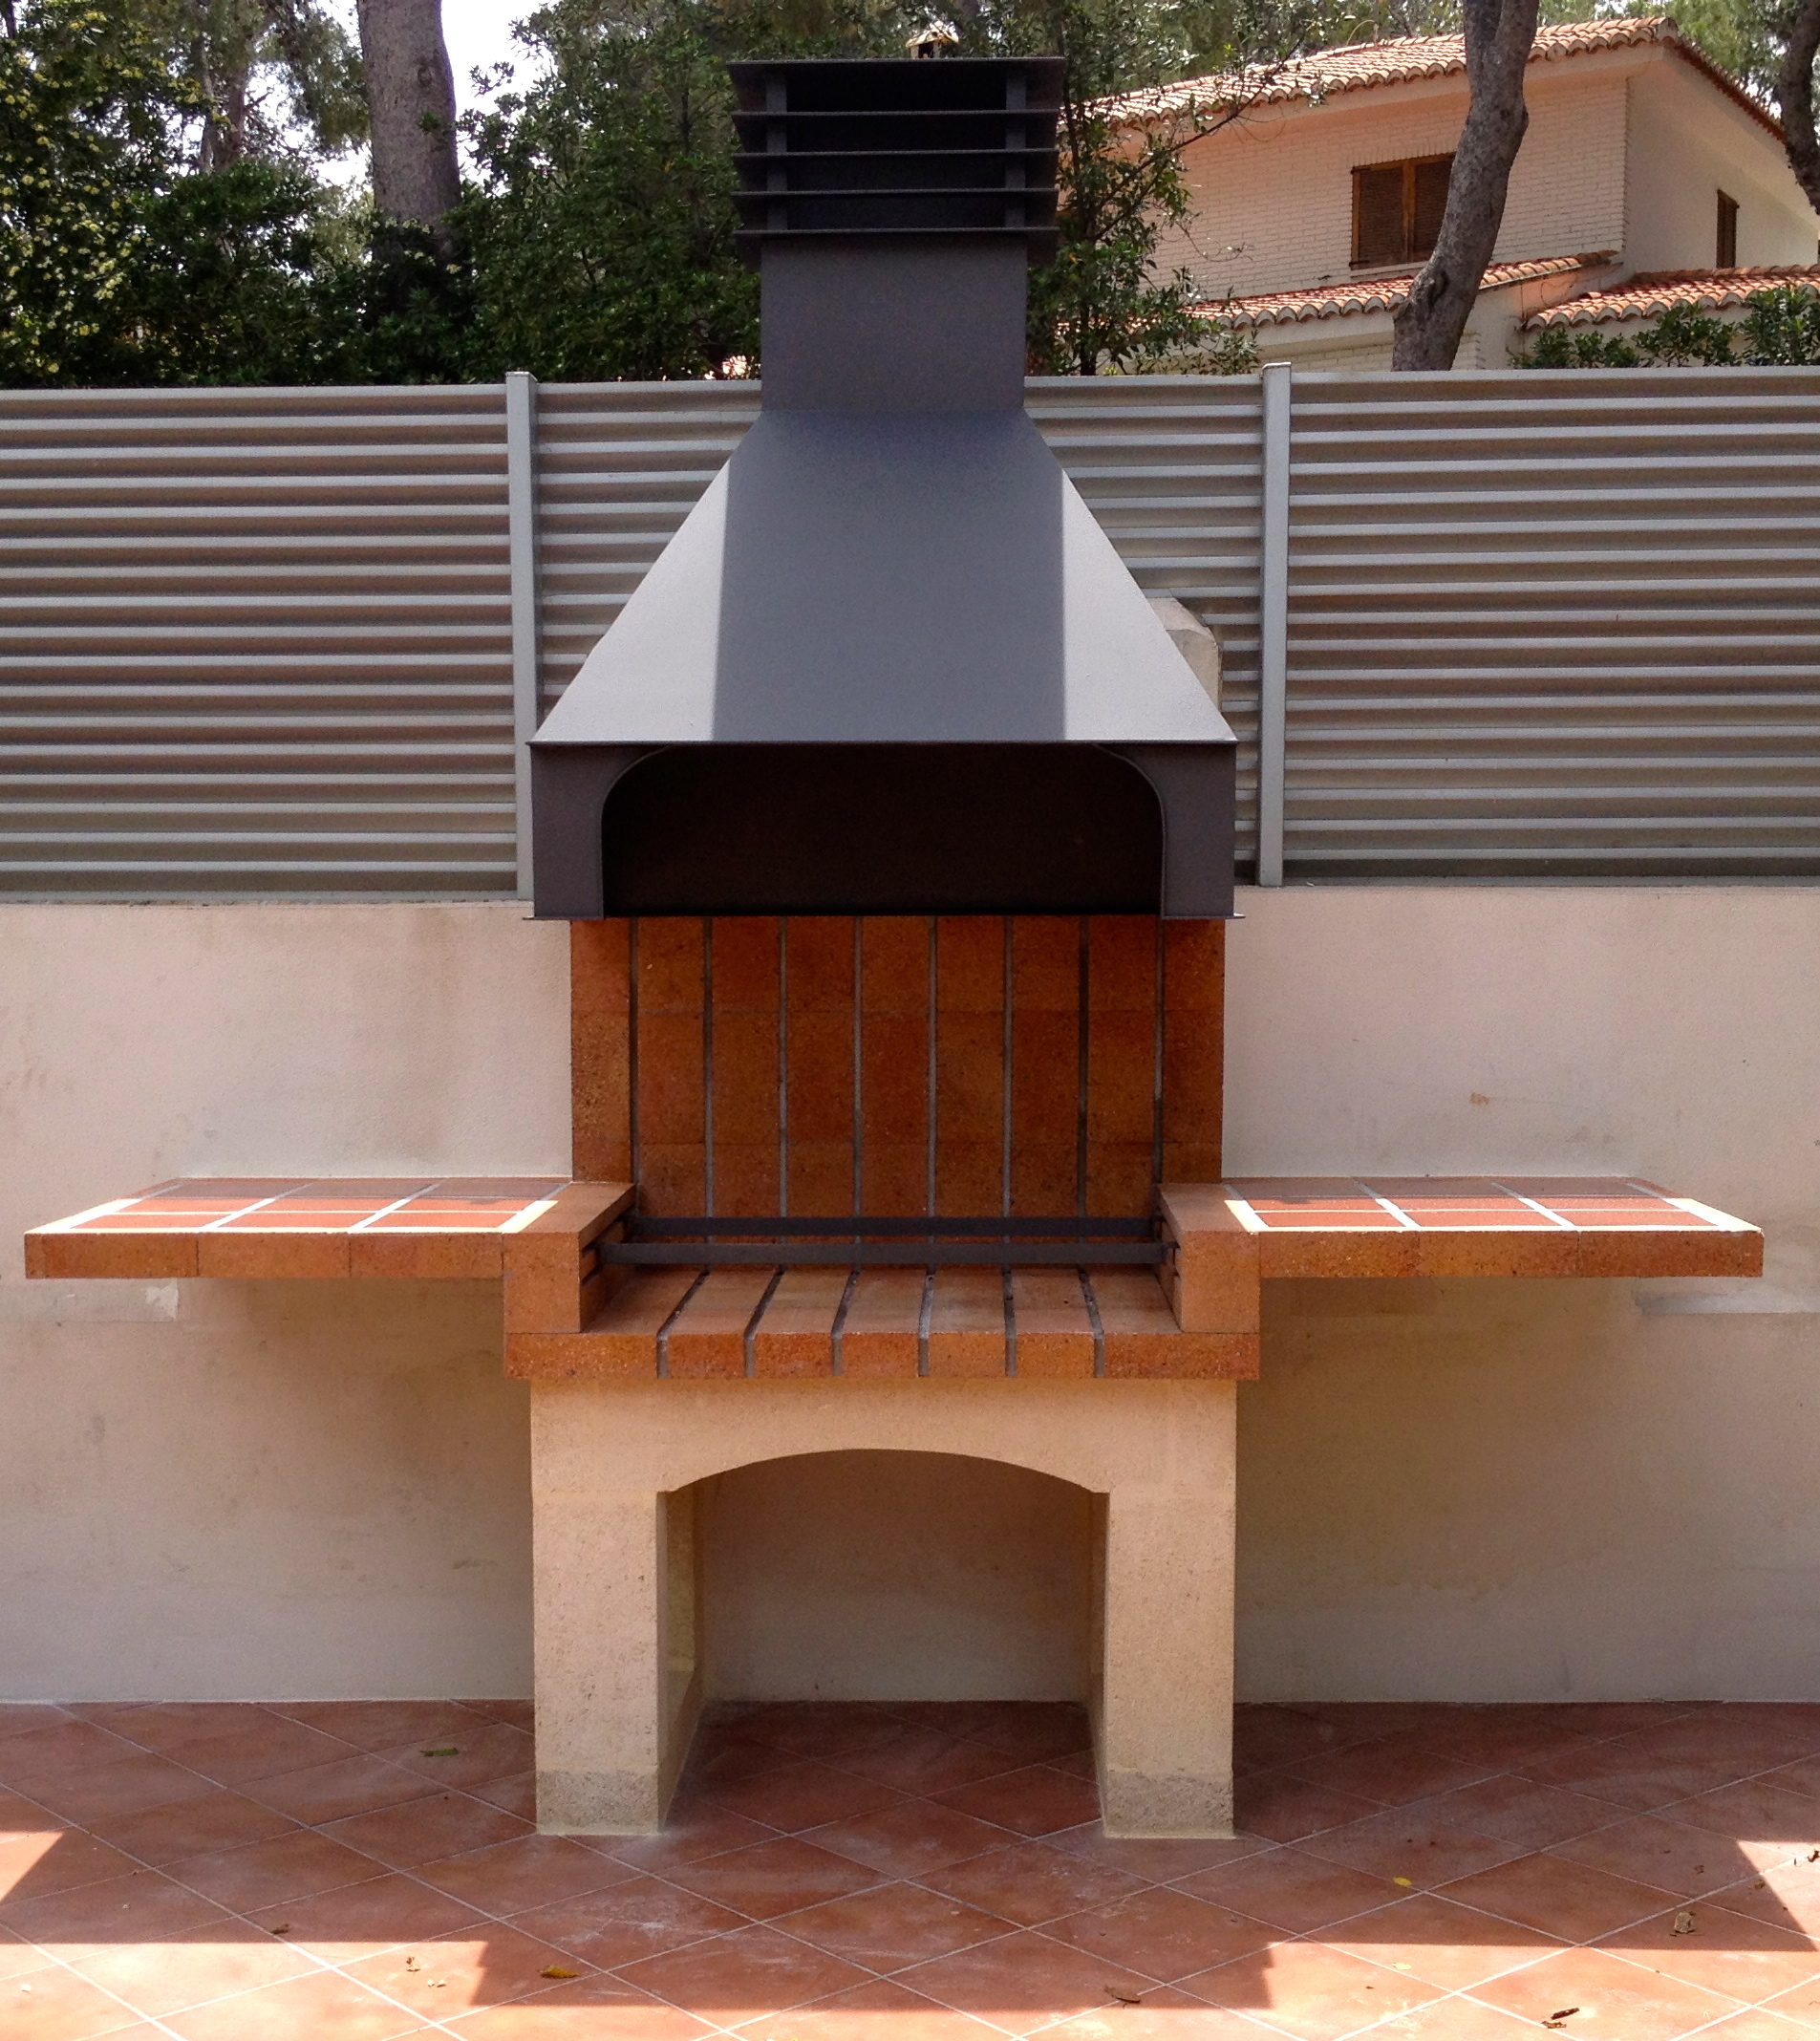 Blog chimeneas s nchez part 2 - Barbacoas de ladrillo refractario ...